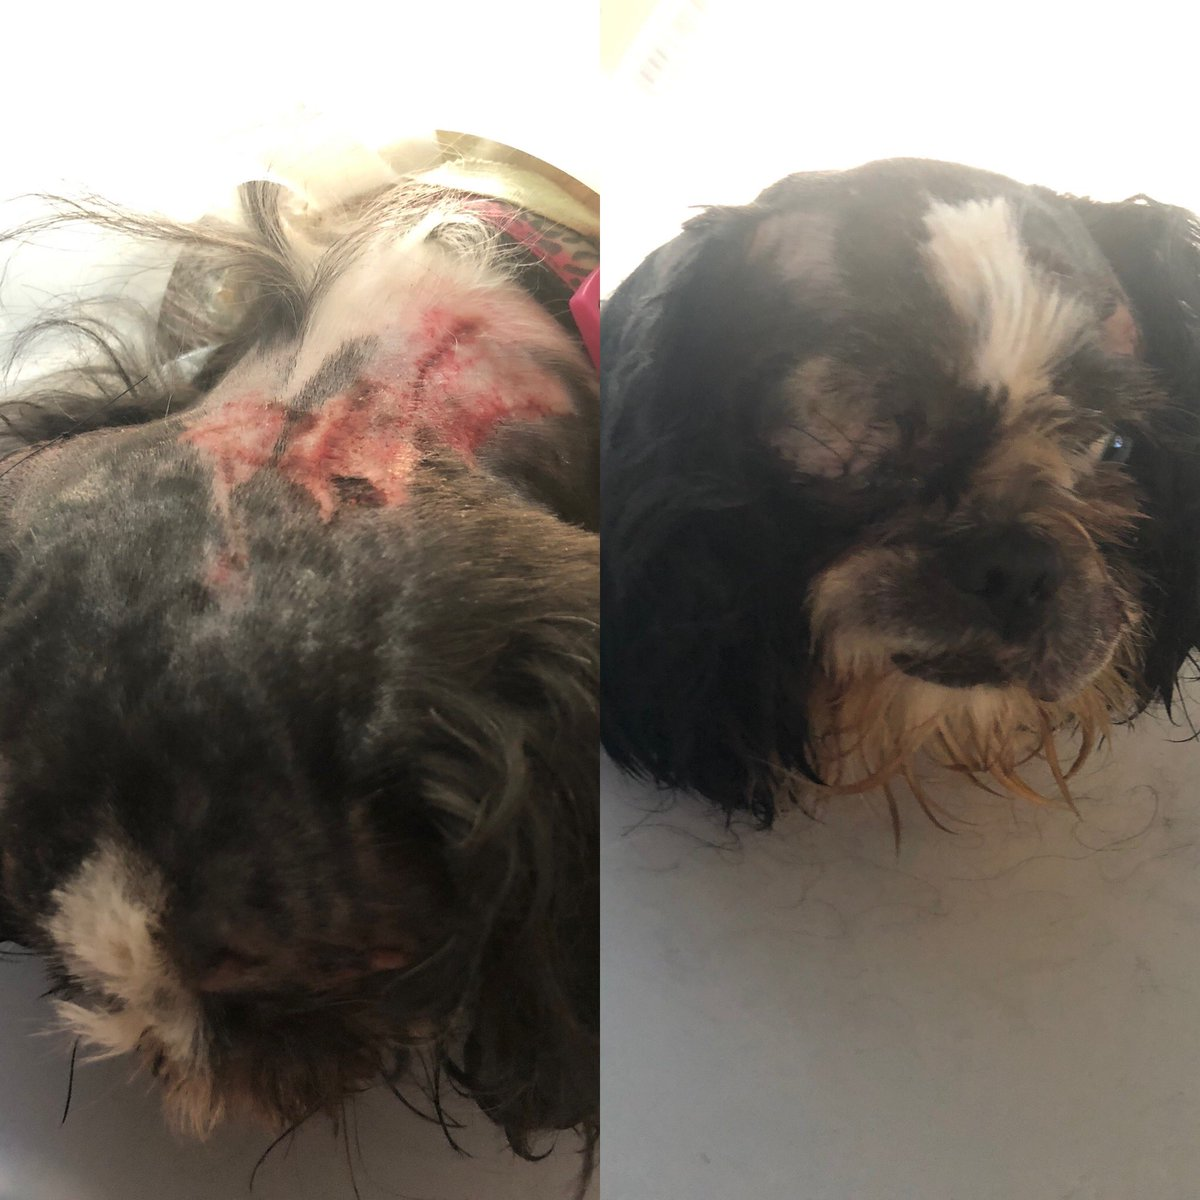 #shihtzusofinstagram #shihtzu My poor Sadie was attacked by the #dobermanpinscher next door. Multiple #puncturewounds, #lacerations, bald spots where her hair was pulled out by the roots, and her right eye was popped out if it's socket. #prognosis is good.pic.twitter.com/0zZW8uxUqA